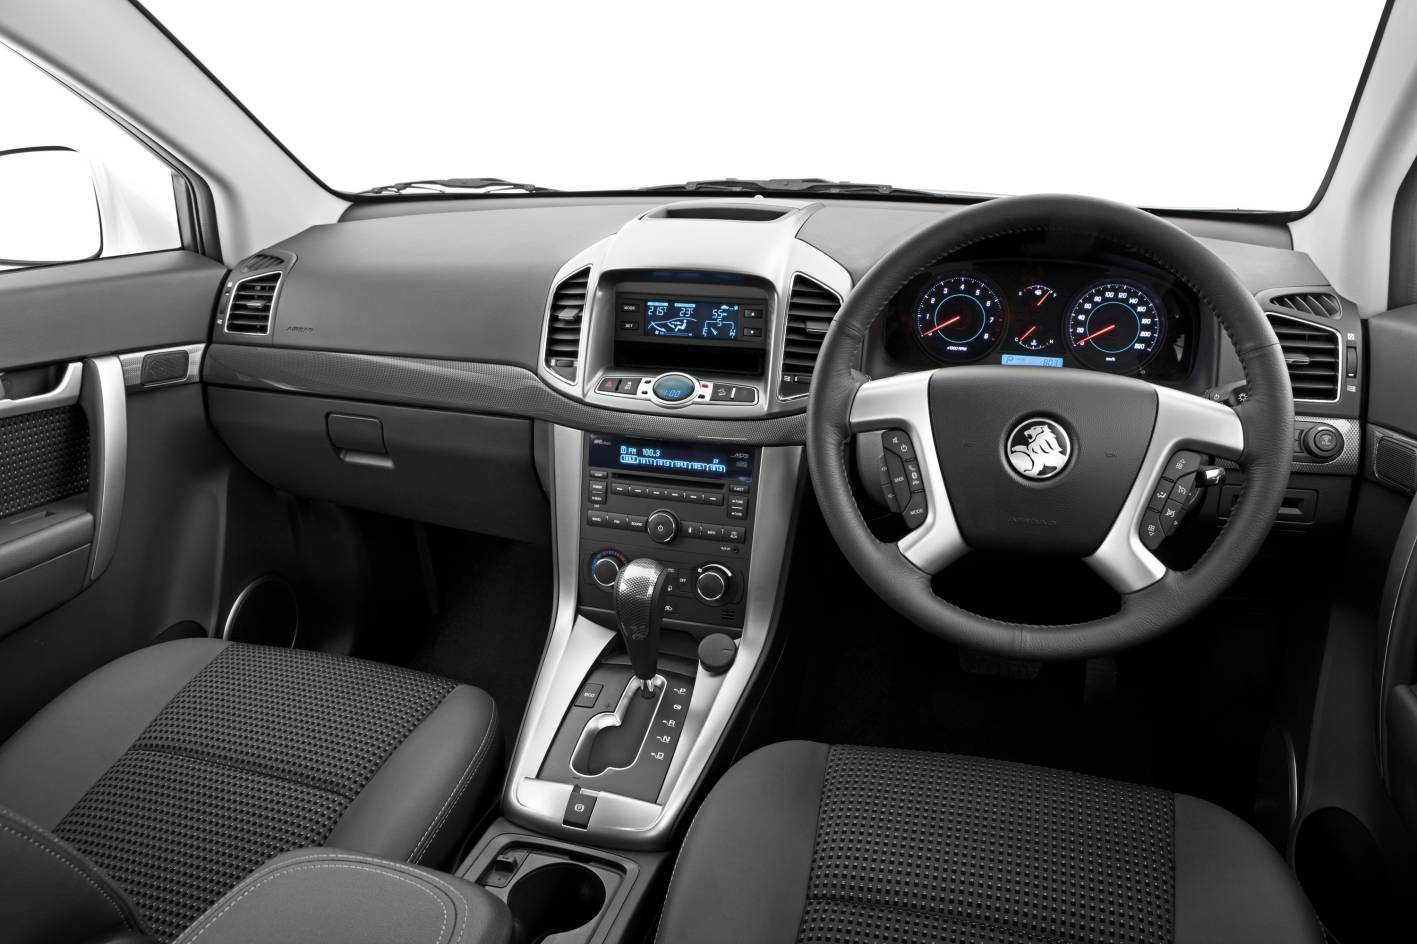 2012 Holden Captiva #8